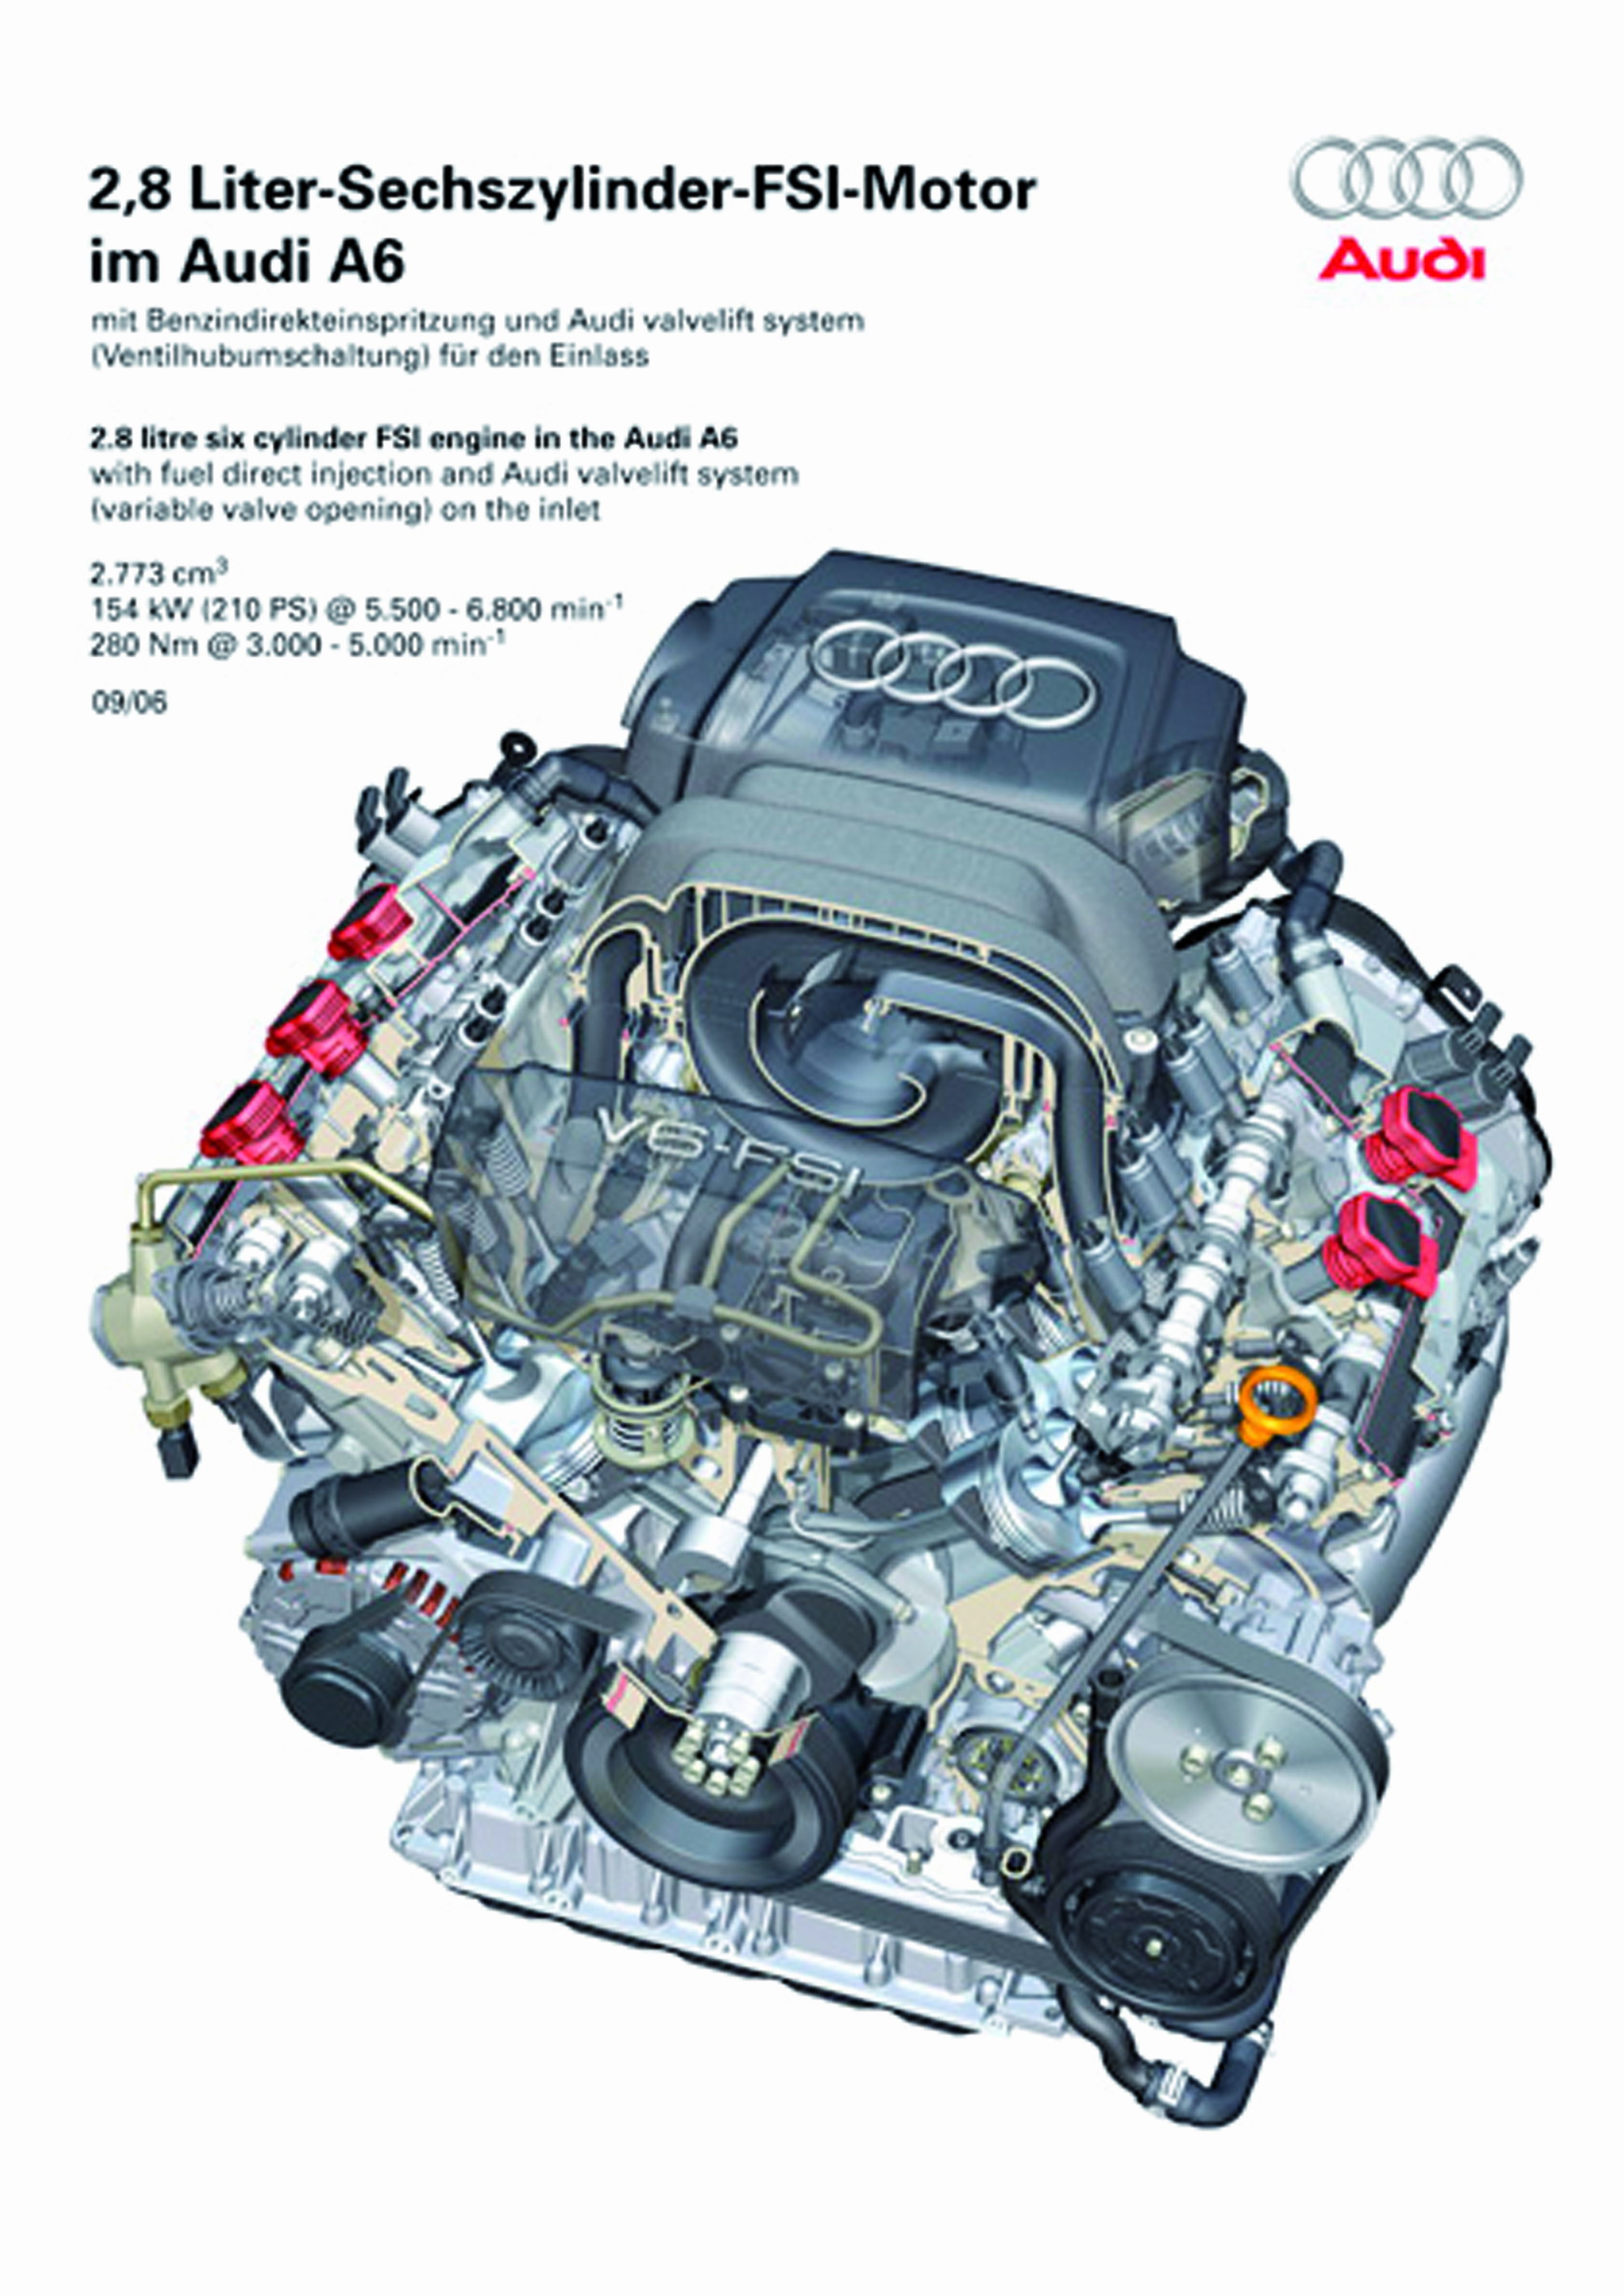 Audi A6 2 8 Engine Diagram - Wiring Diagram Recent drop-leader -  drop-leader.cosavedereanapoli.it | Audi A6 2 8 Engine Diagram |  | drop-leader.cosavedereanapoli.it